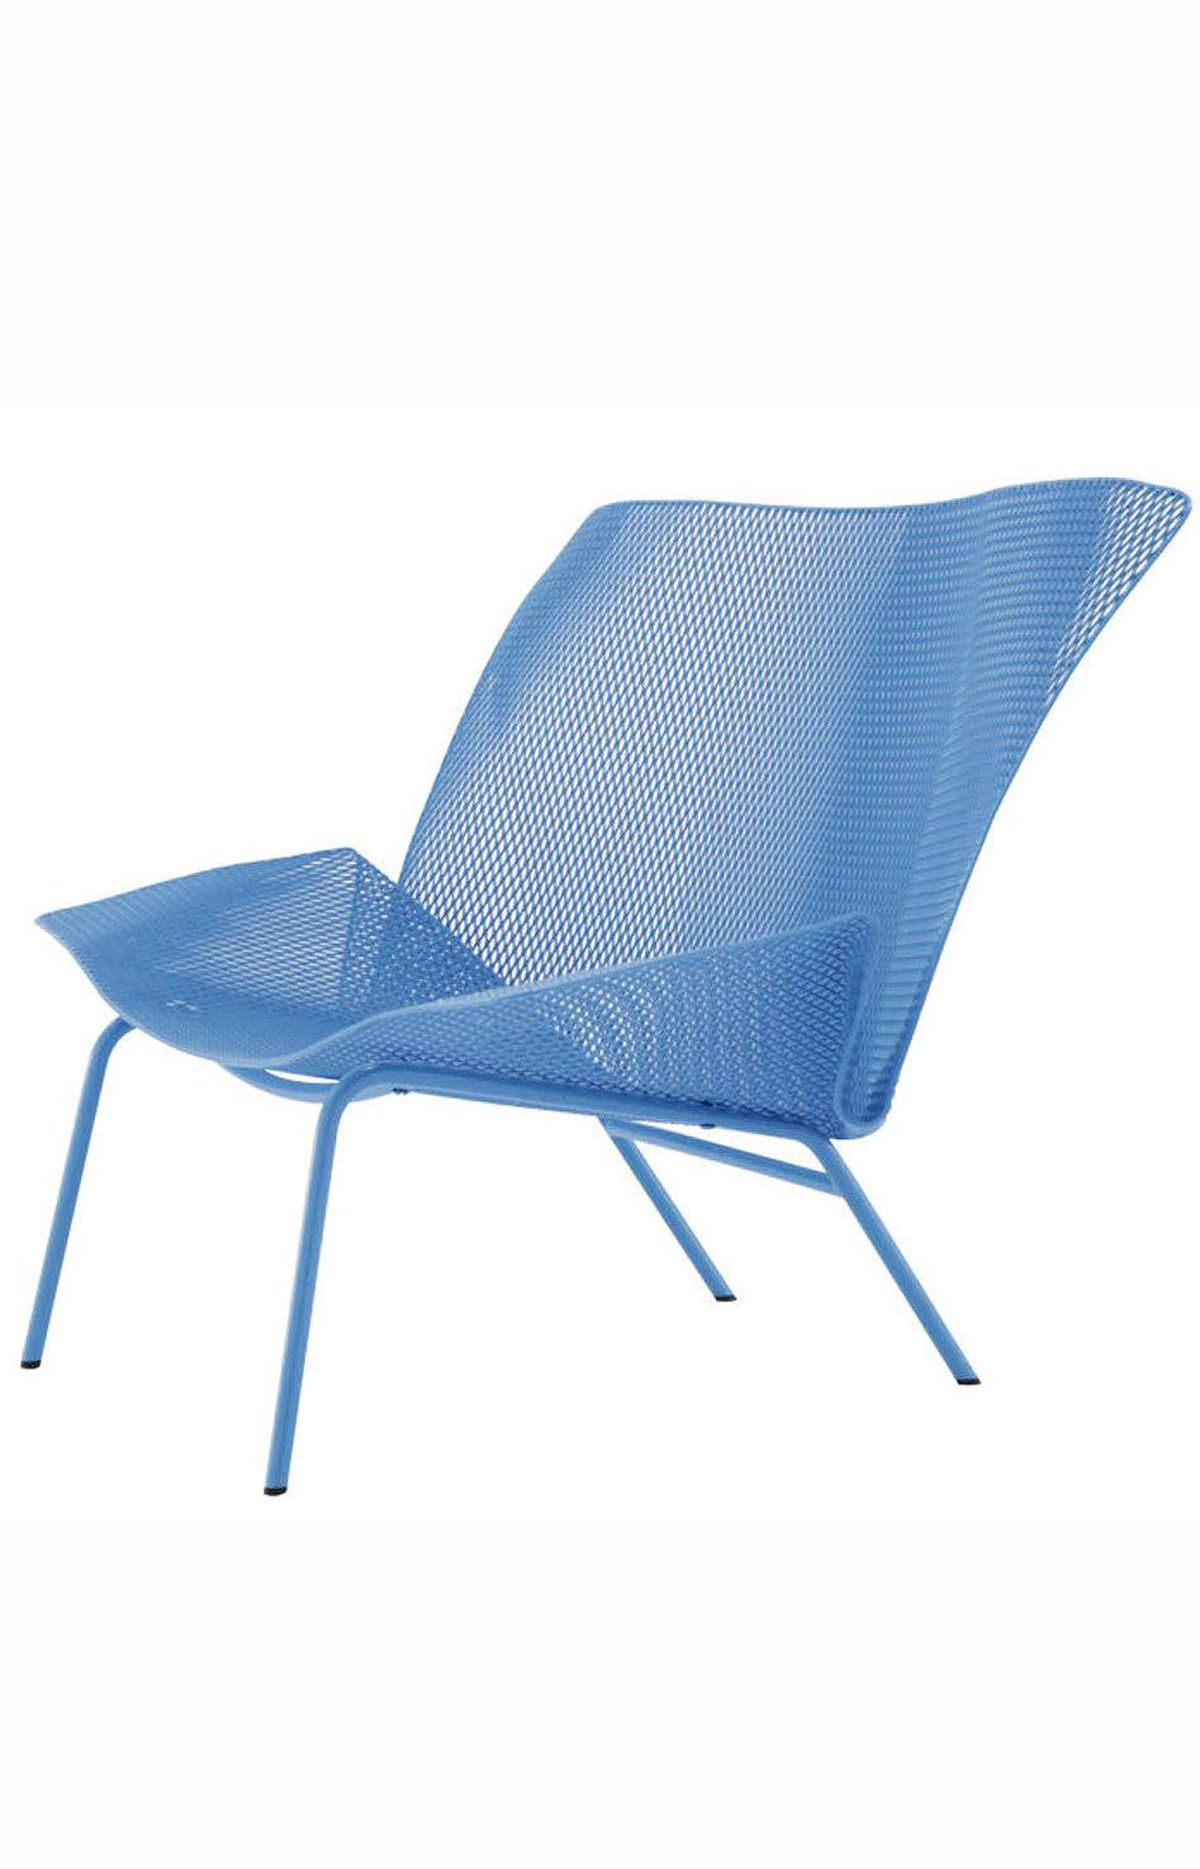 Grillage chair by François Azambourg for Ligne Roset.